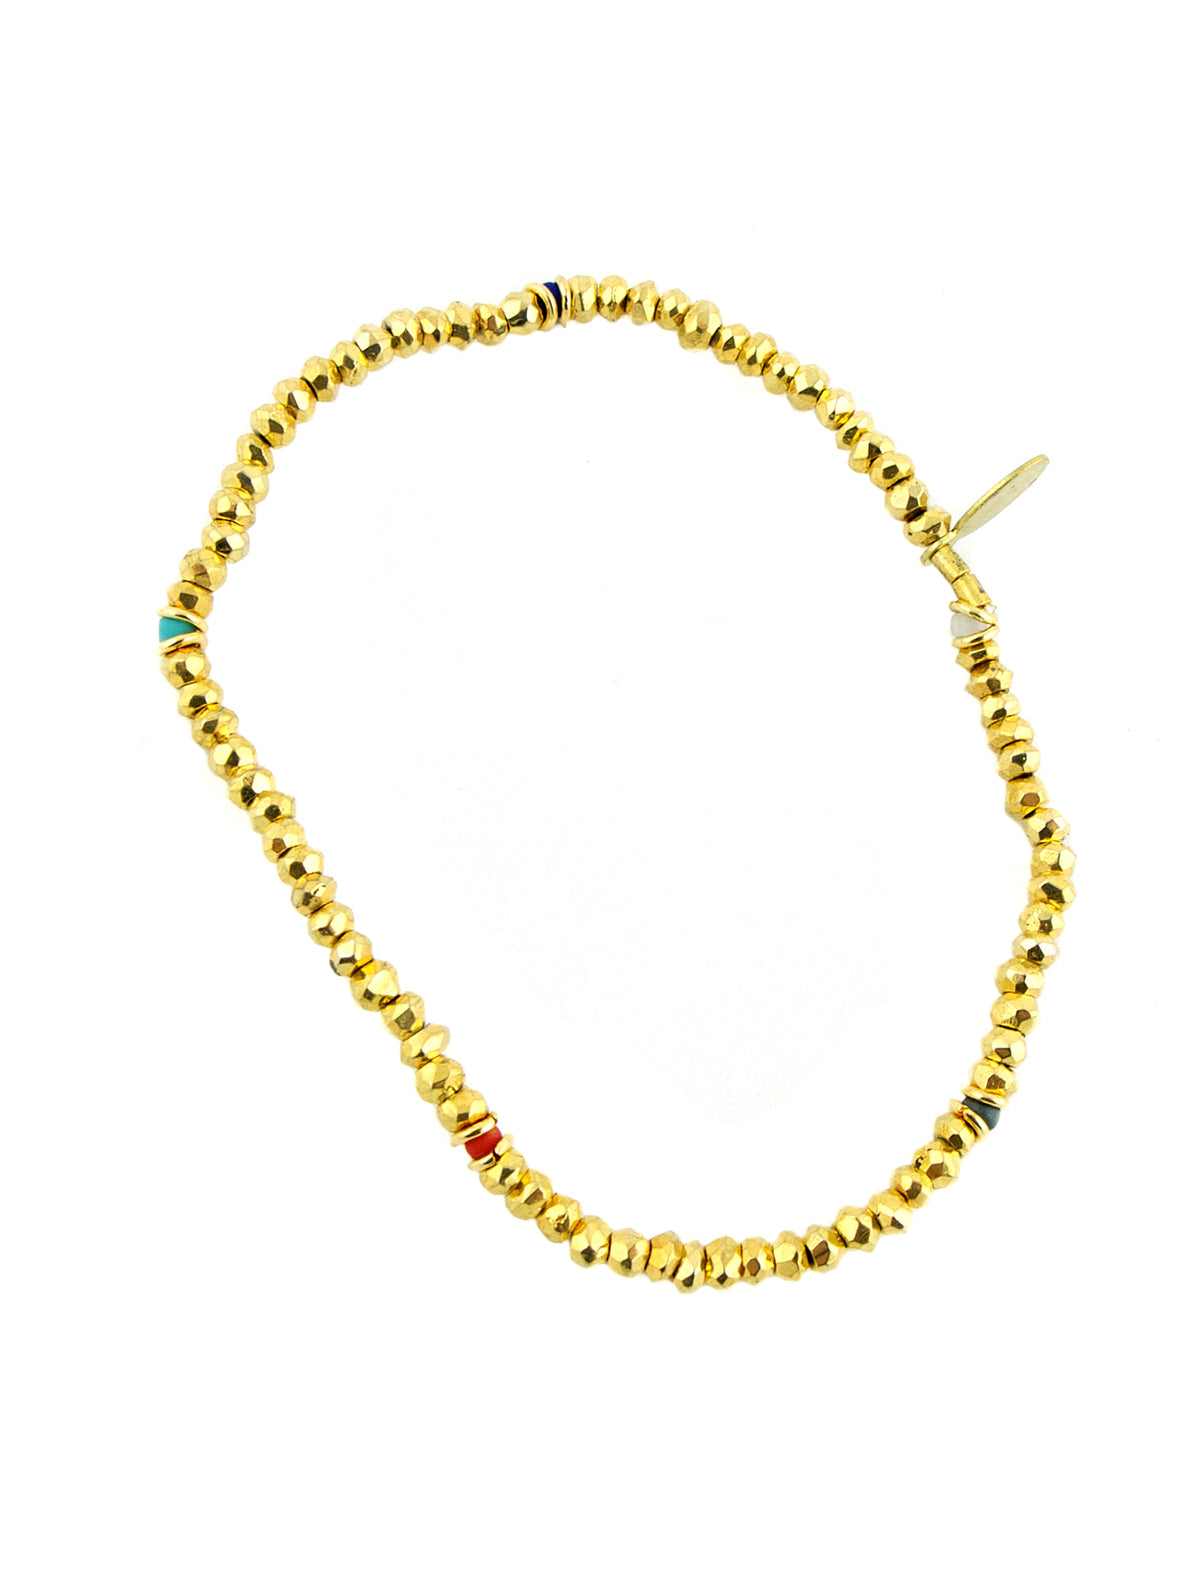 Shashi Noor Yellow Gold Pyrite Gemstone Bracelet